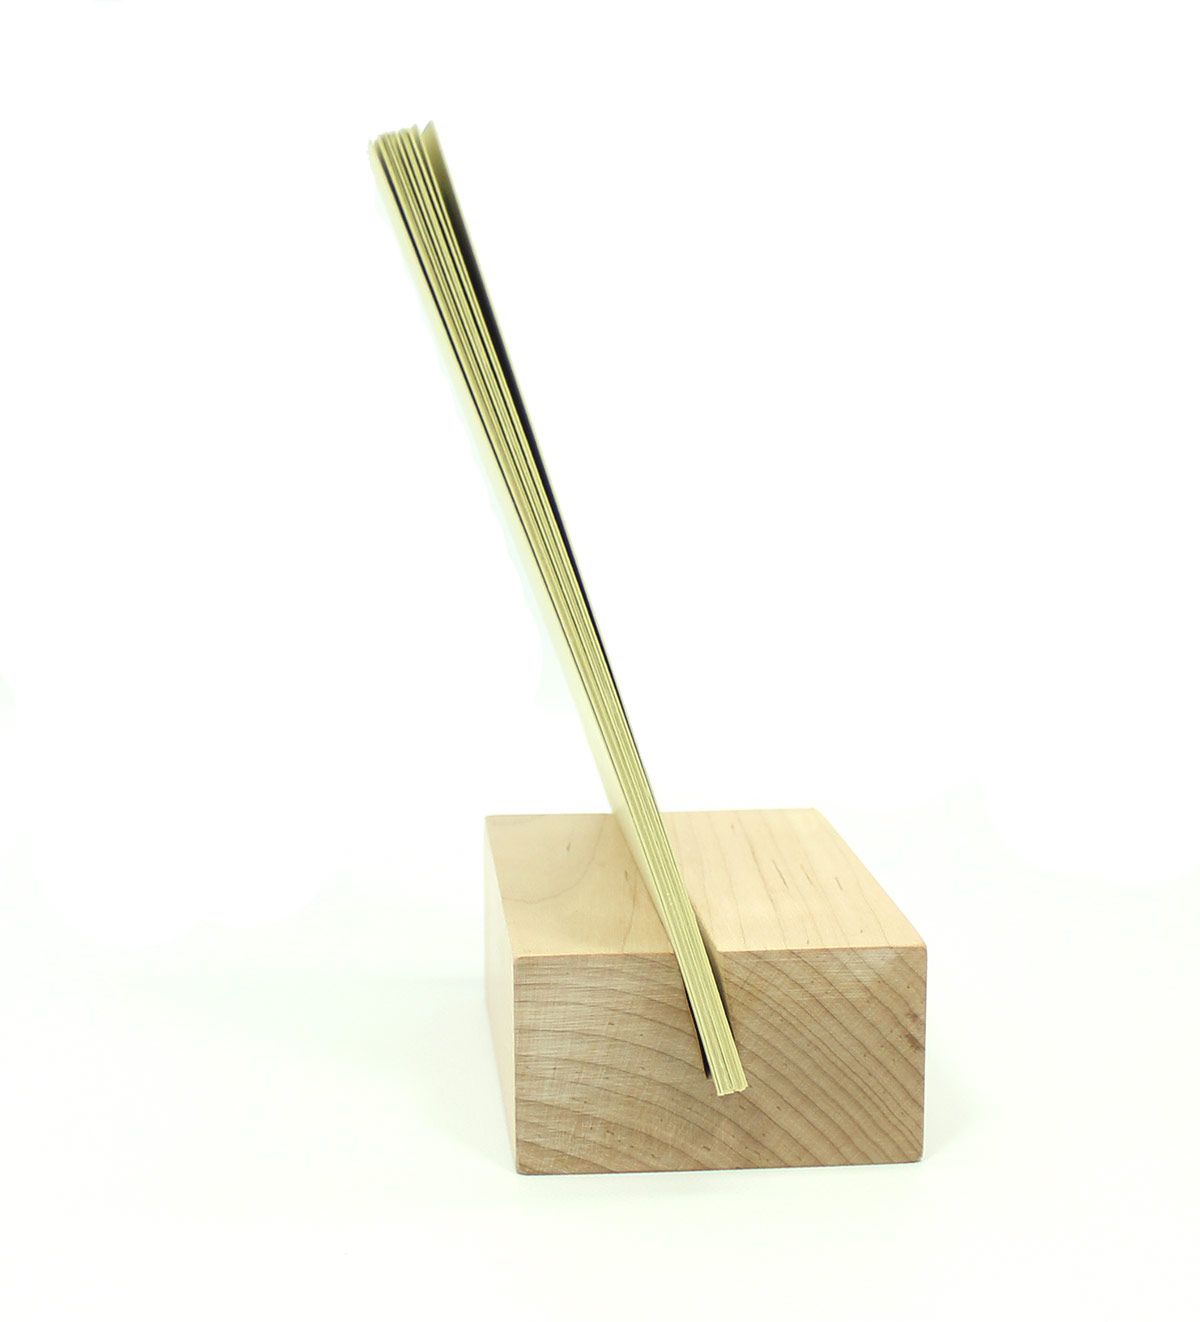 2021 Raw Wood Desk Calendar Stand